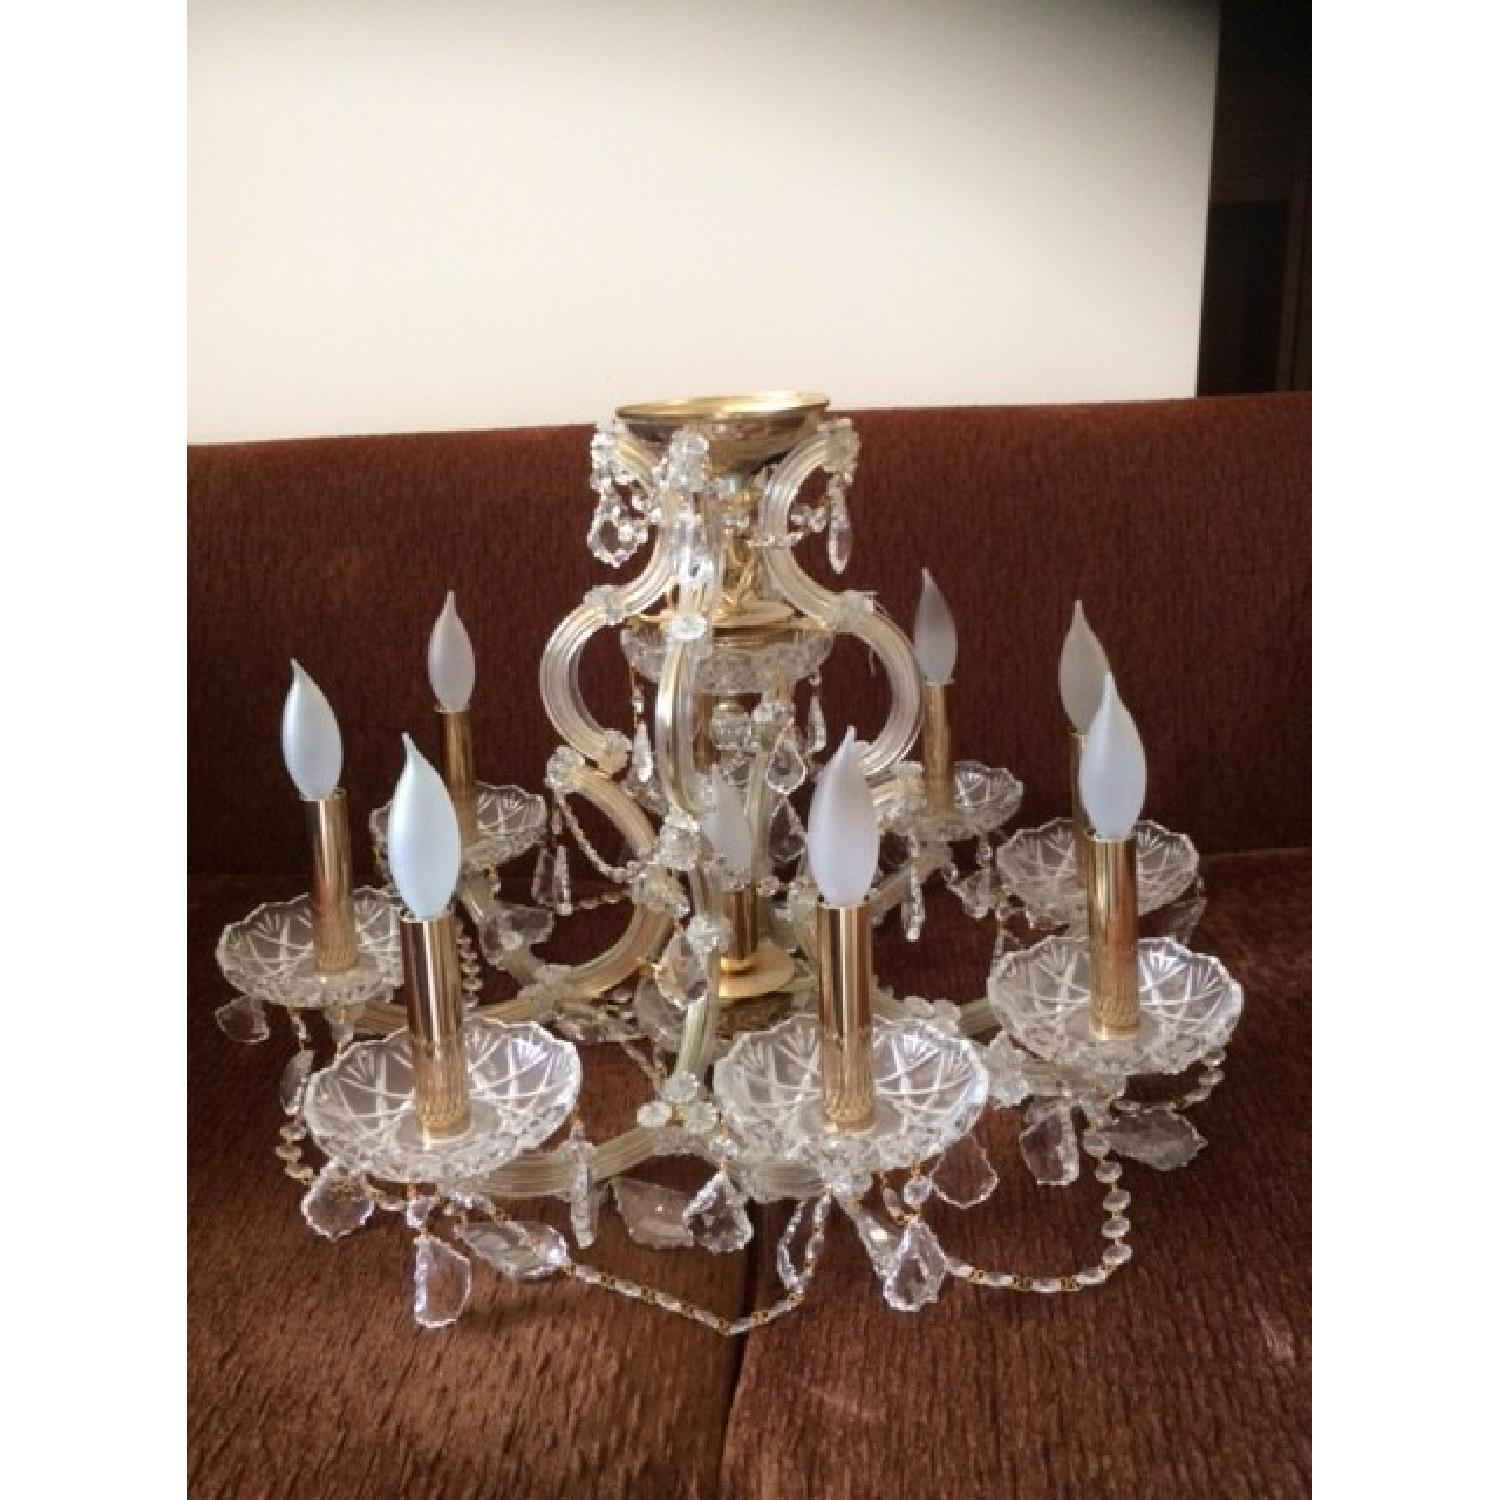 Palace 9 Light Maria Theresa Style Crystal Chandelier - image-2